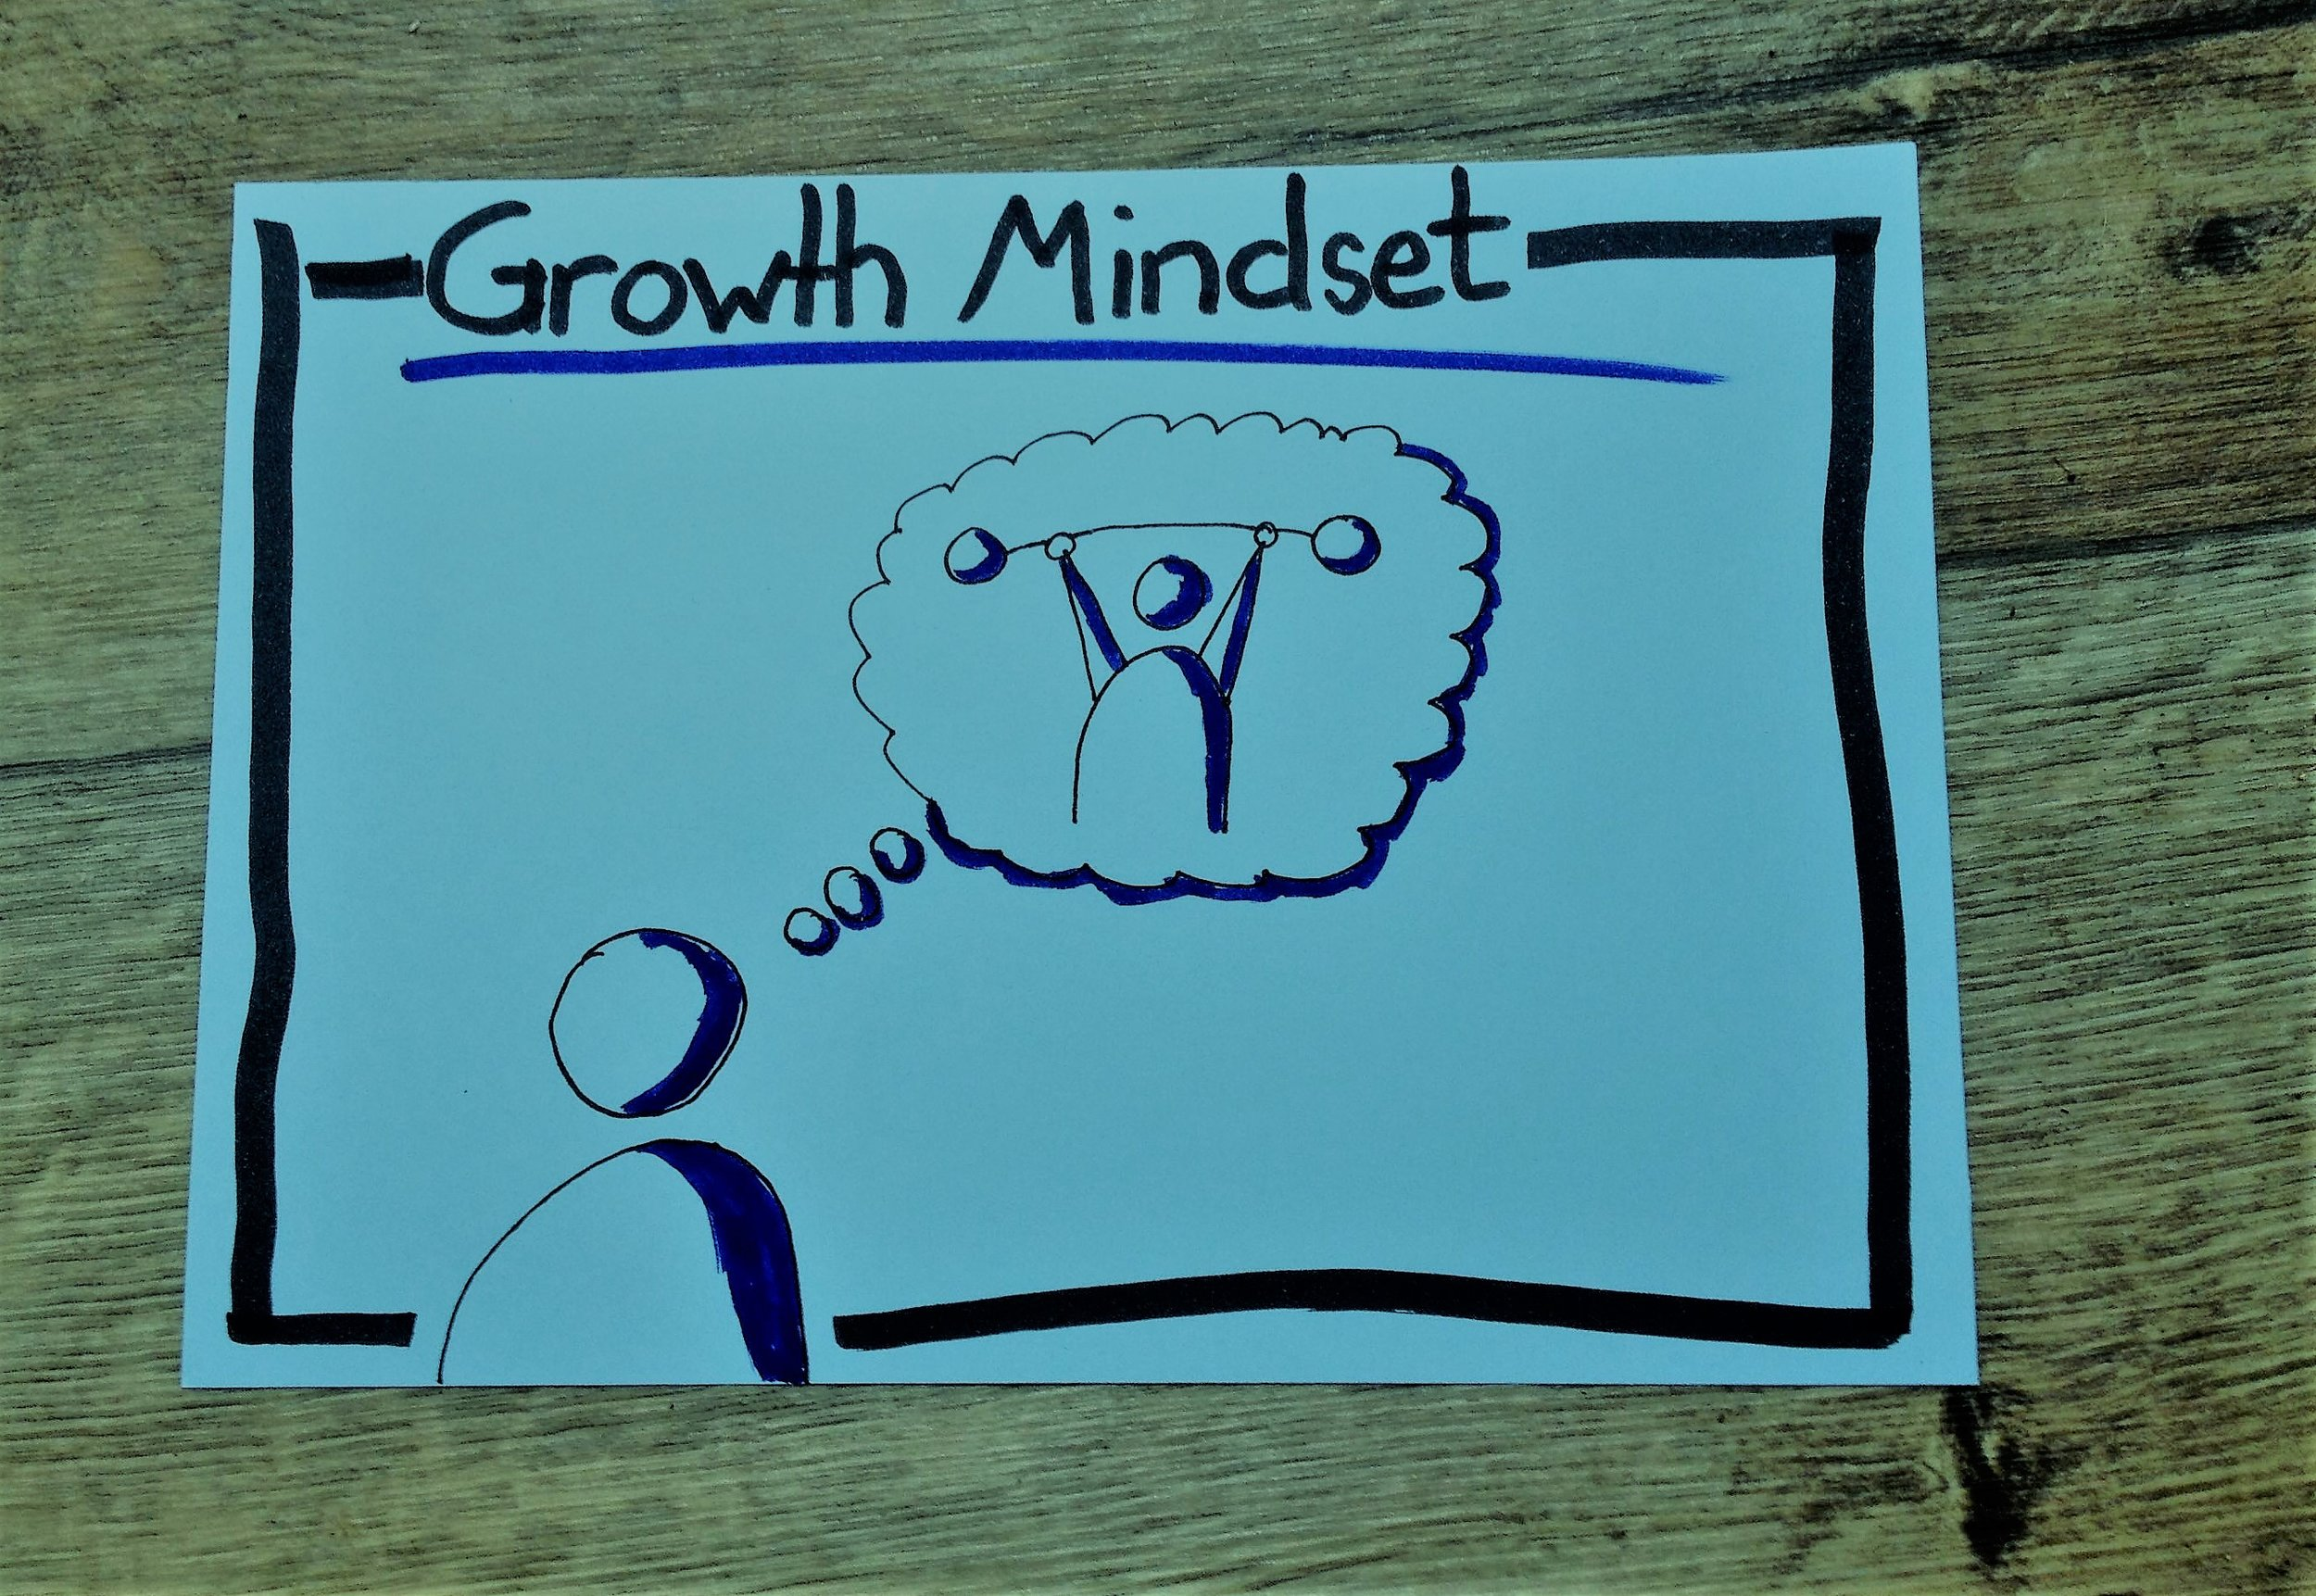 Blog Growth Mindset.jpg